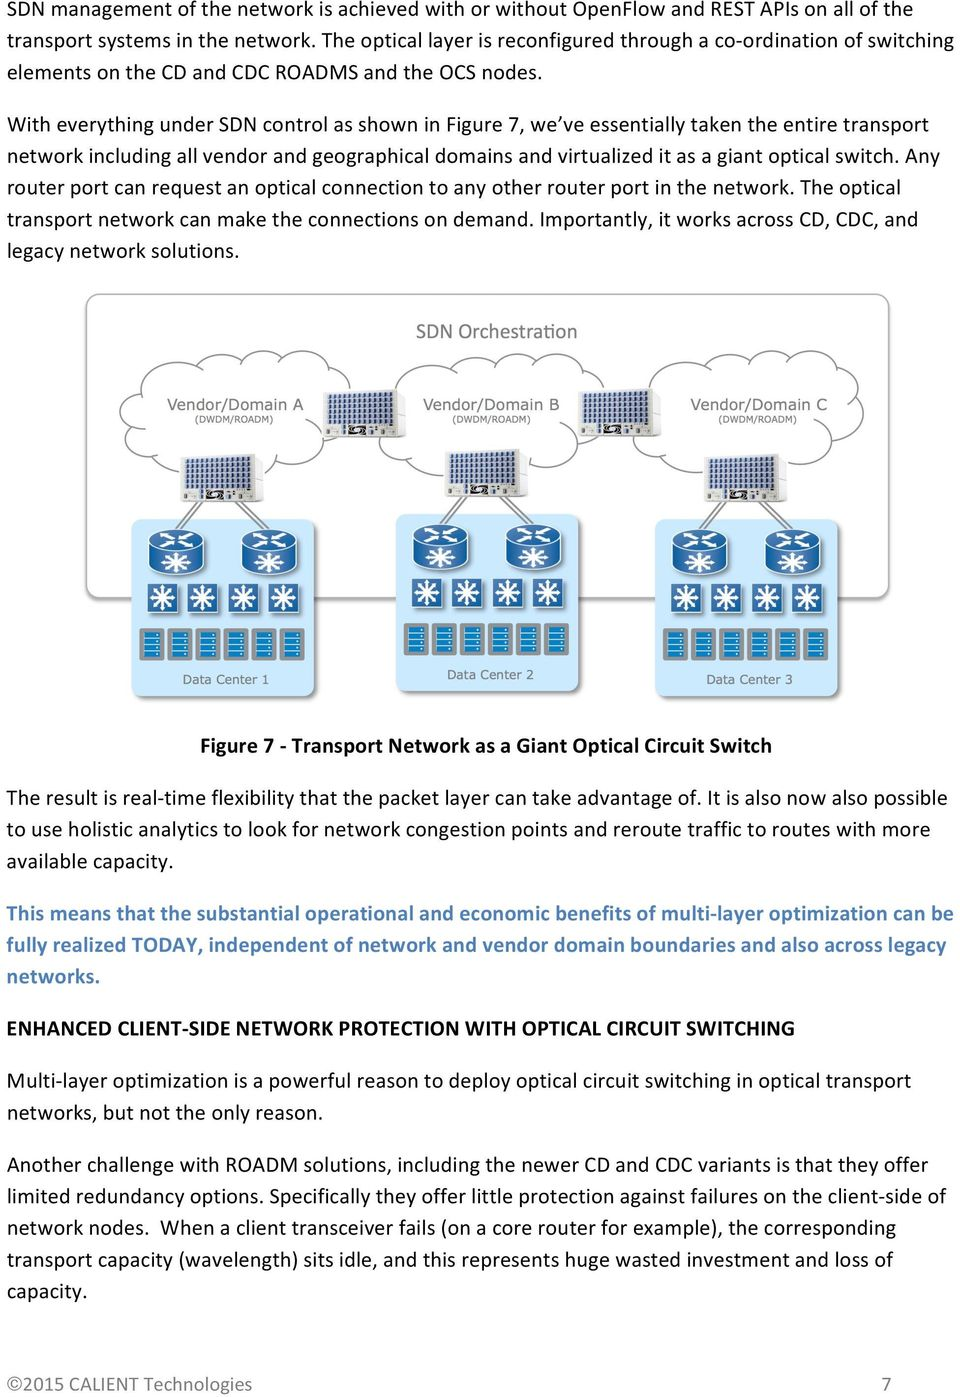 With everything under SDN control as shown in Figure 7, we ve essentially taken the entire transport network including all vendor and geographical domains and virtualized it as a giant optical switch.